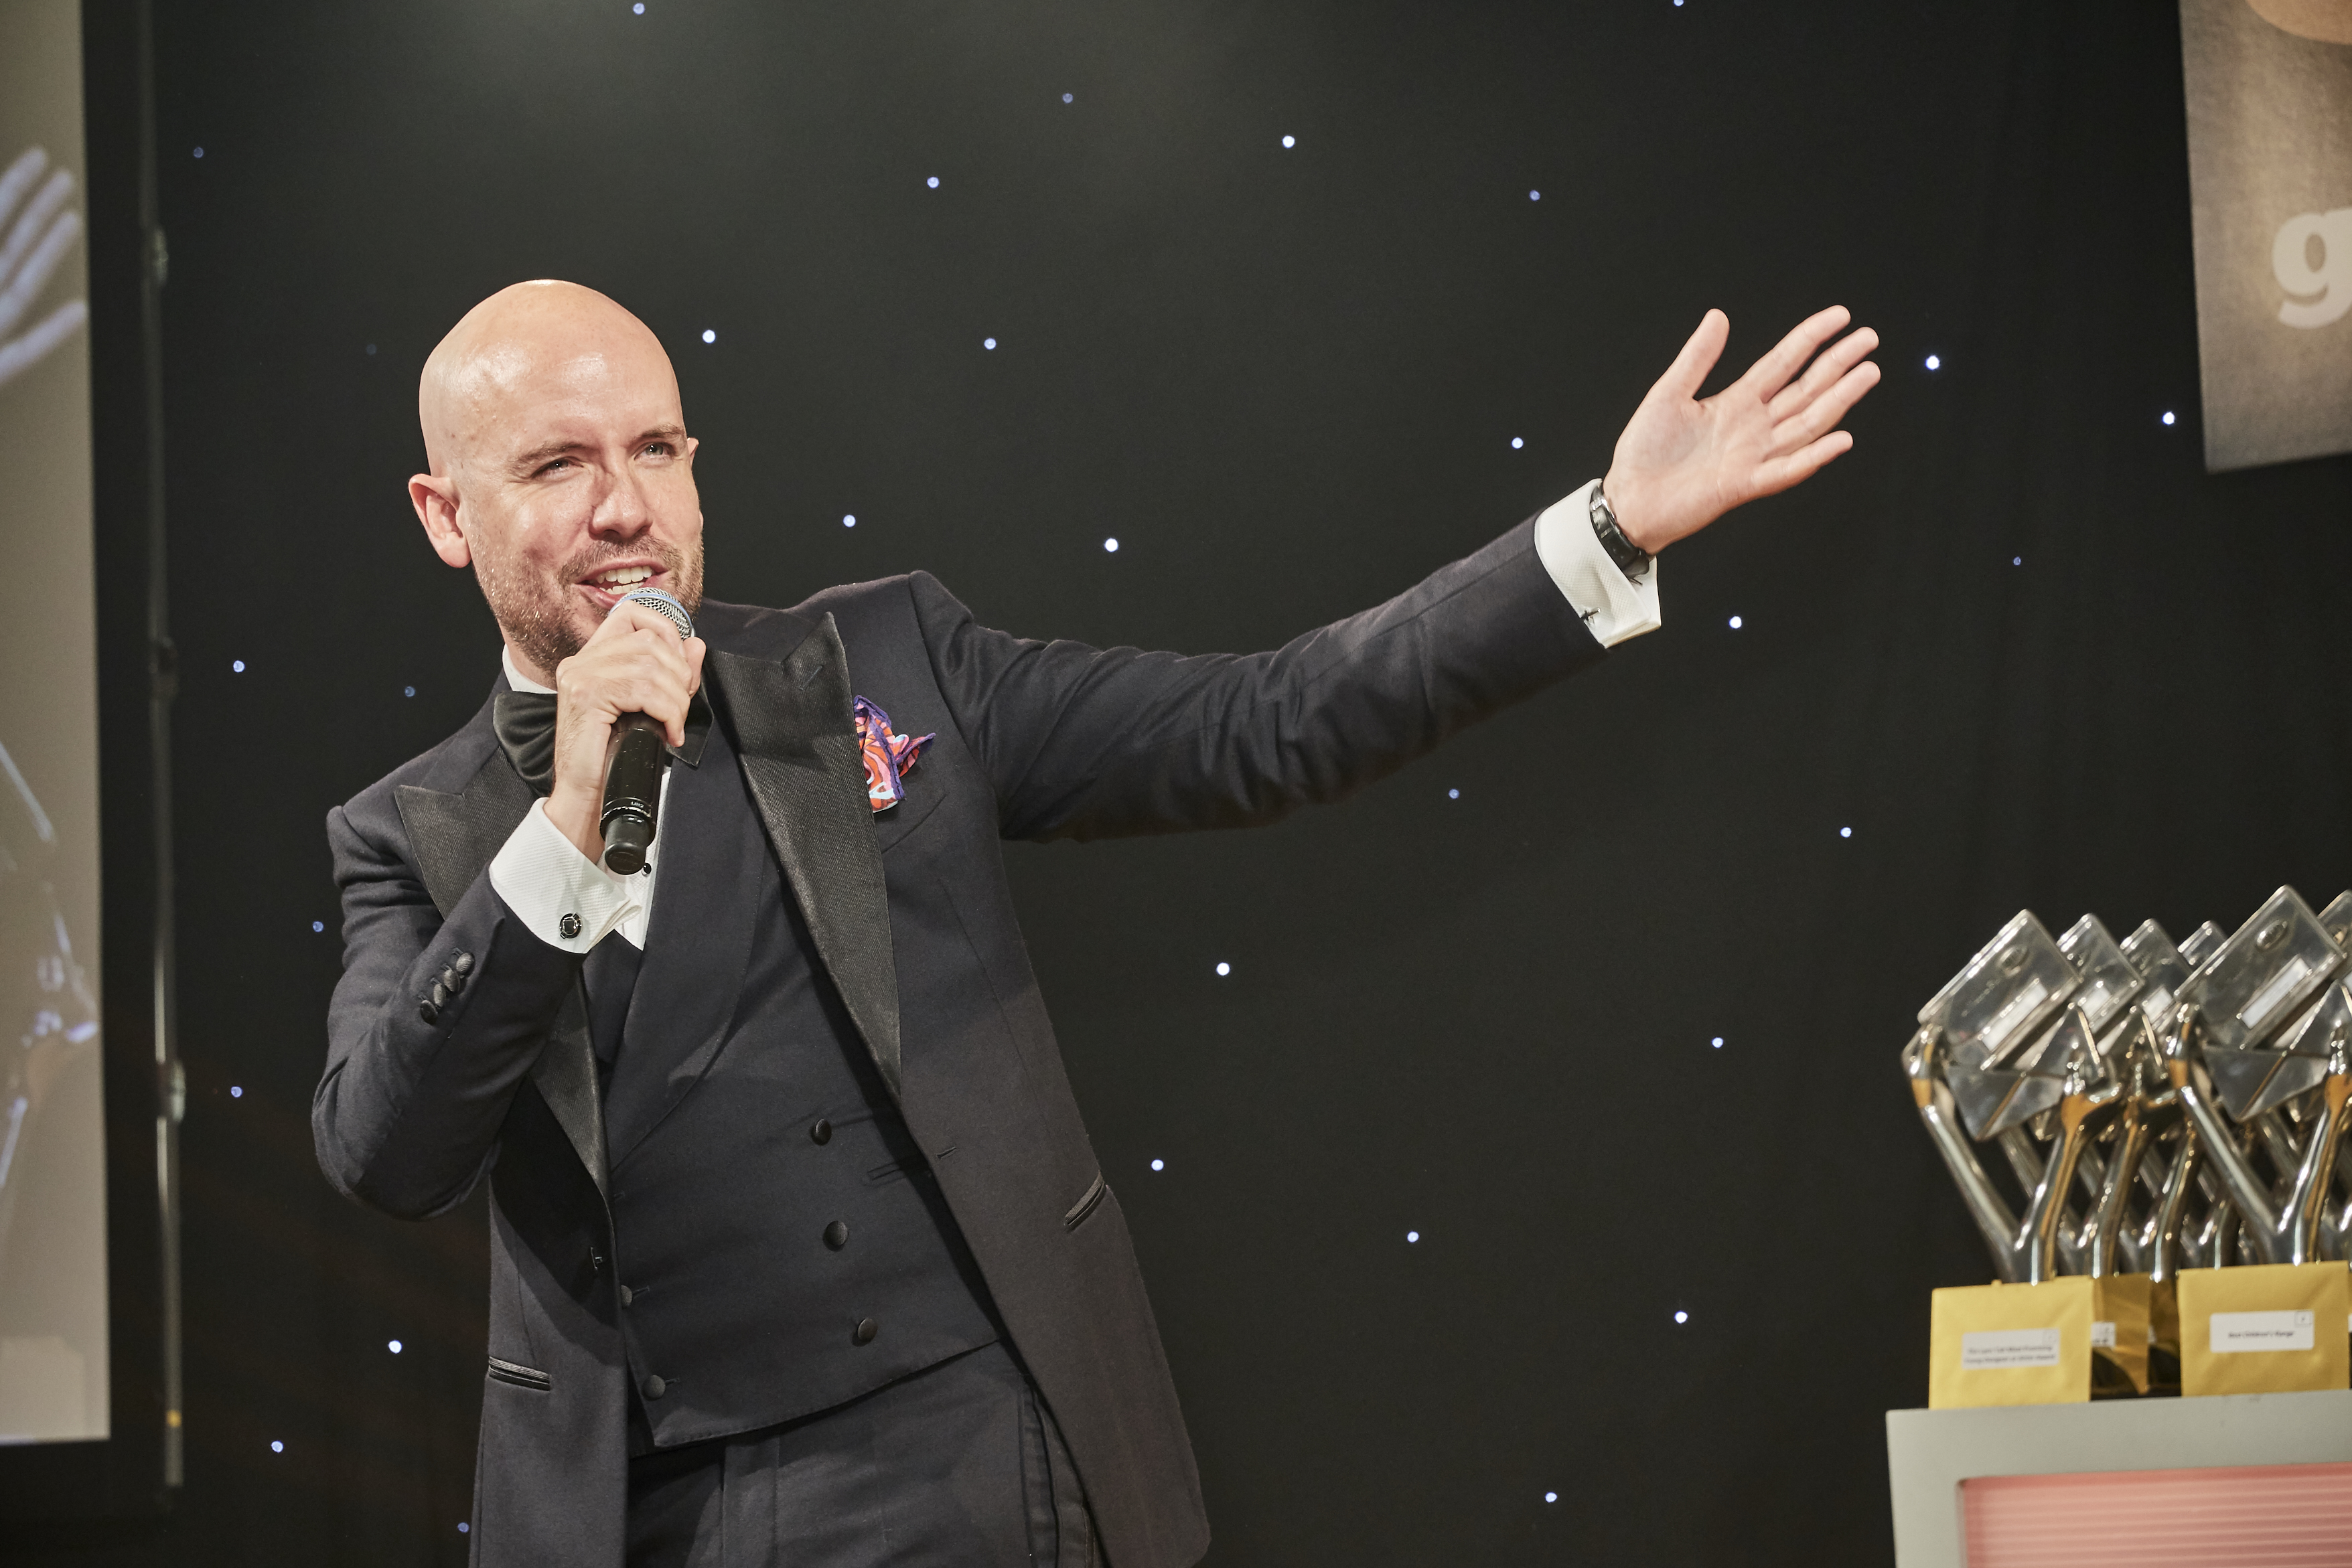 Above: Comedian and TV presenter, Tom Allen was spot on as host for The Henries.